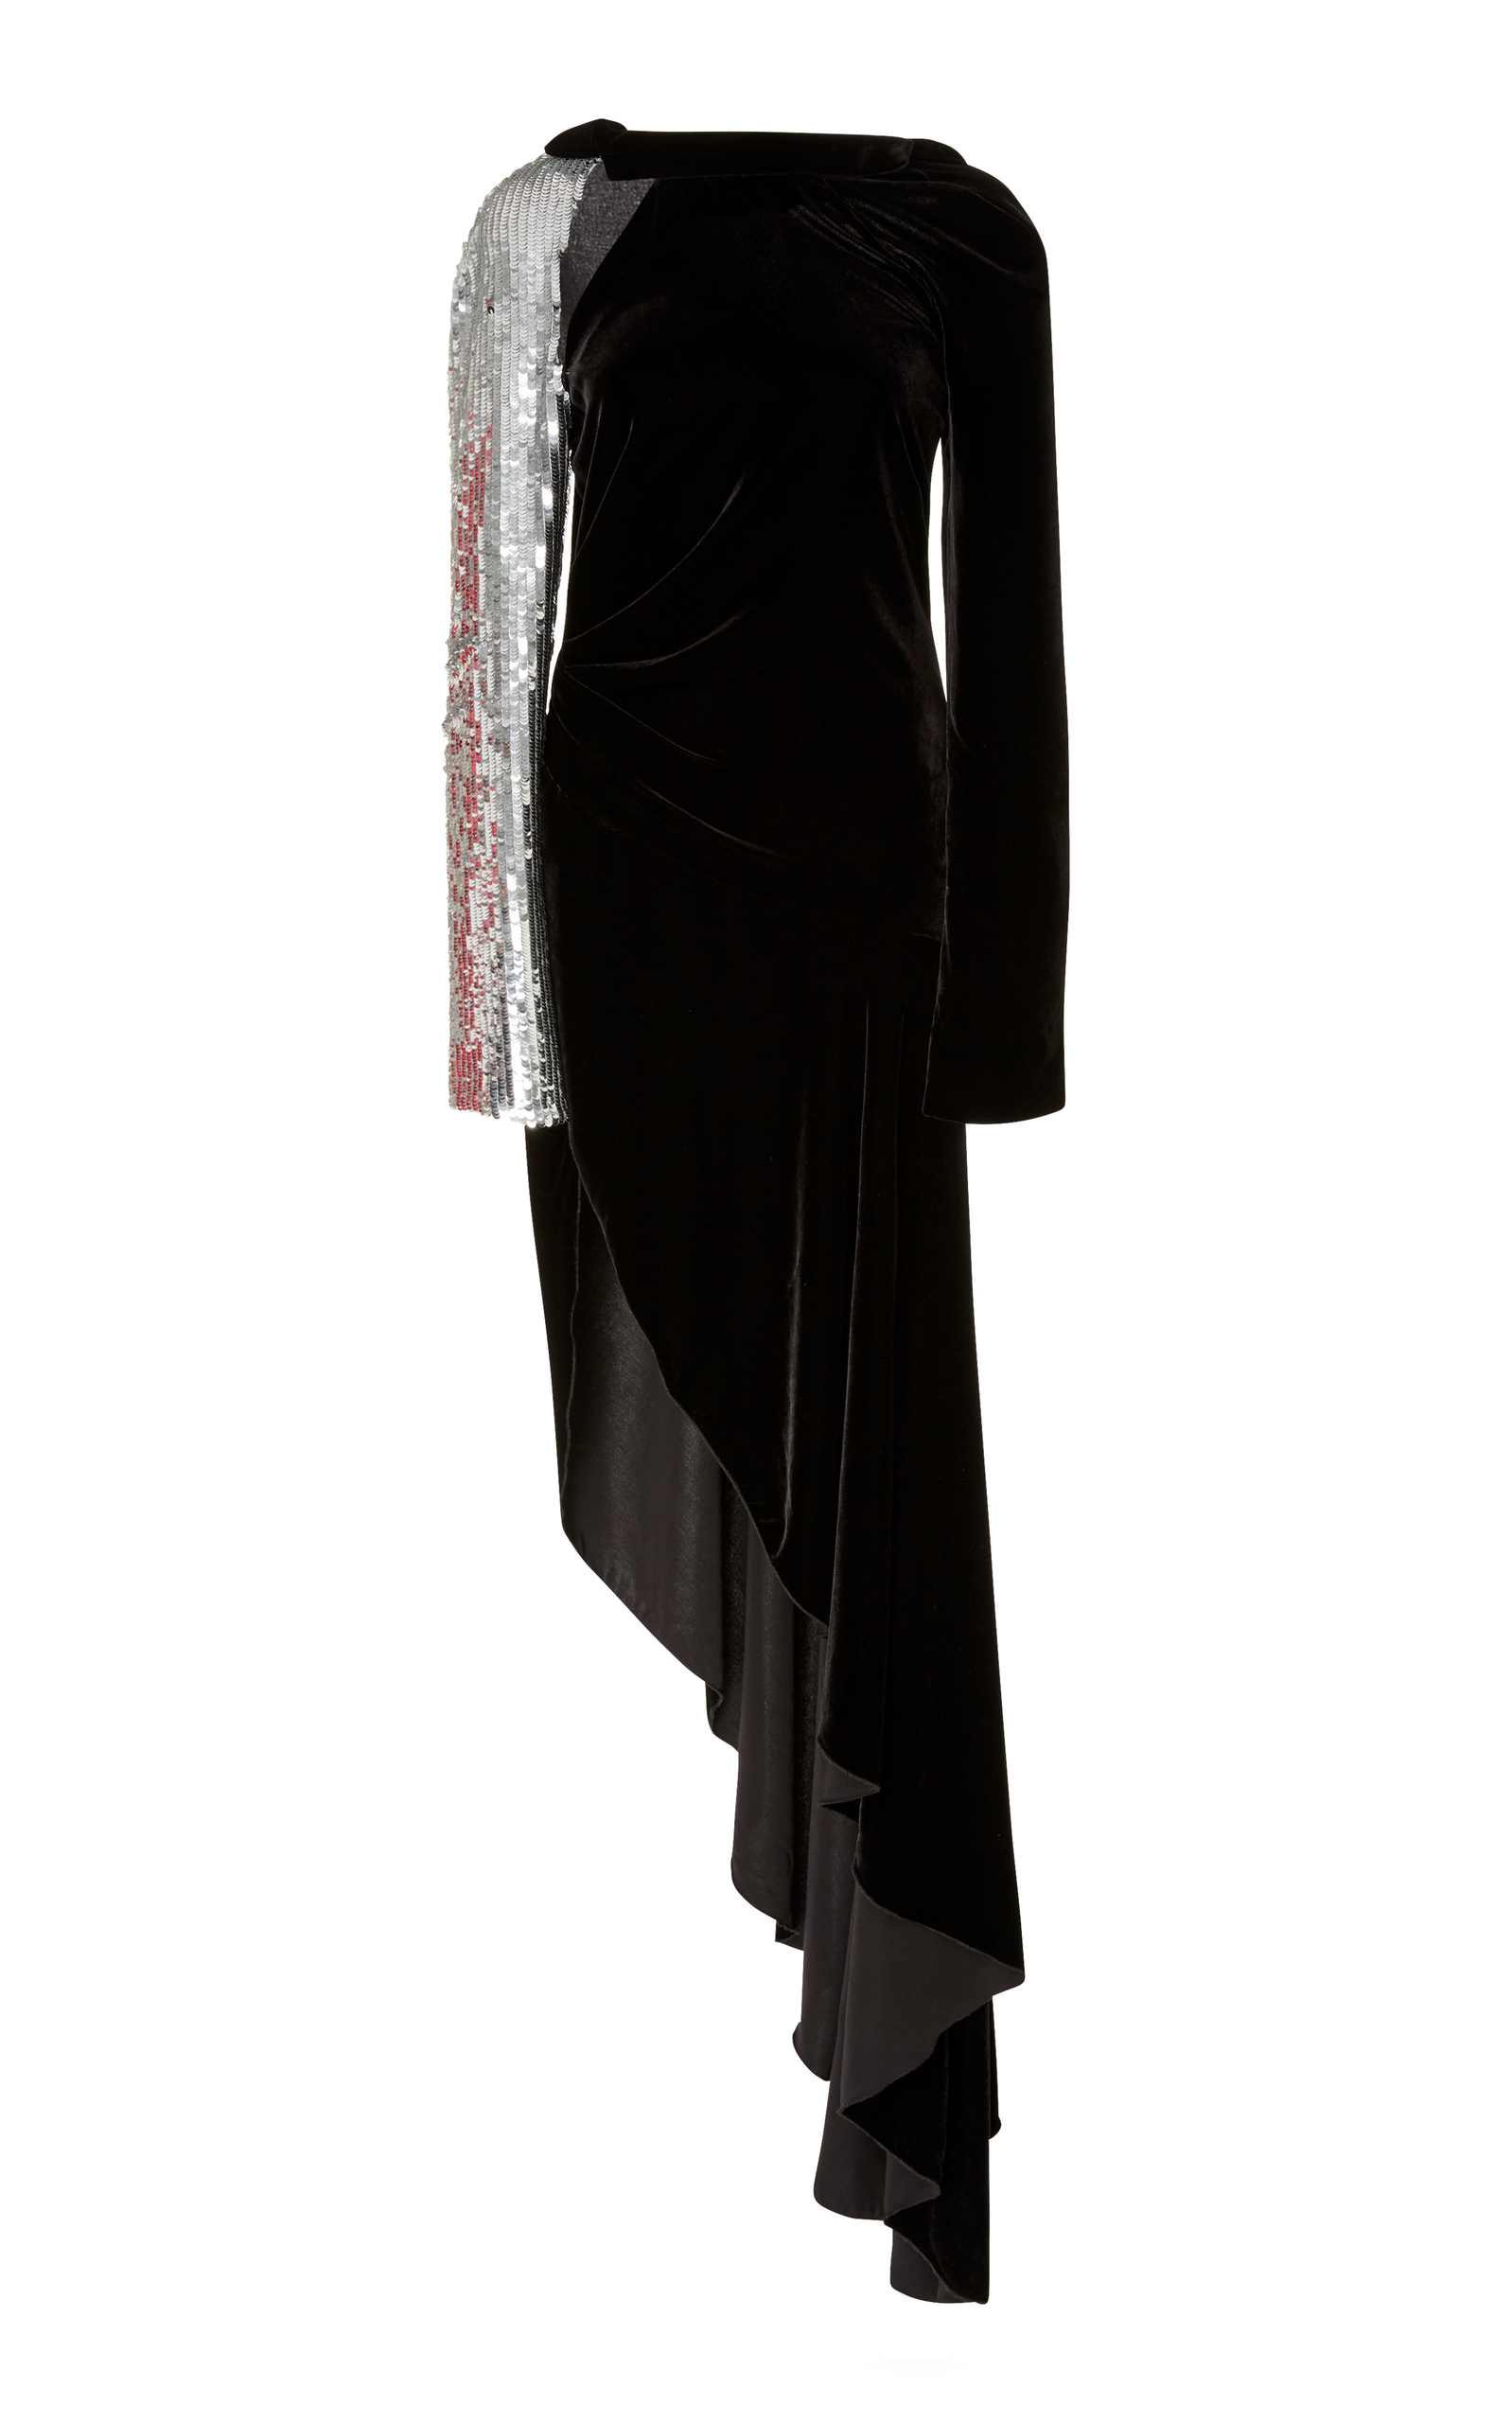 Asymmetric Sequin-Embellished Velvet Maxi Dress, Us6, Black